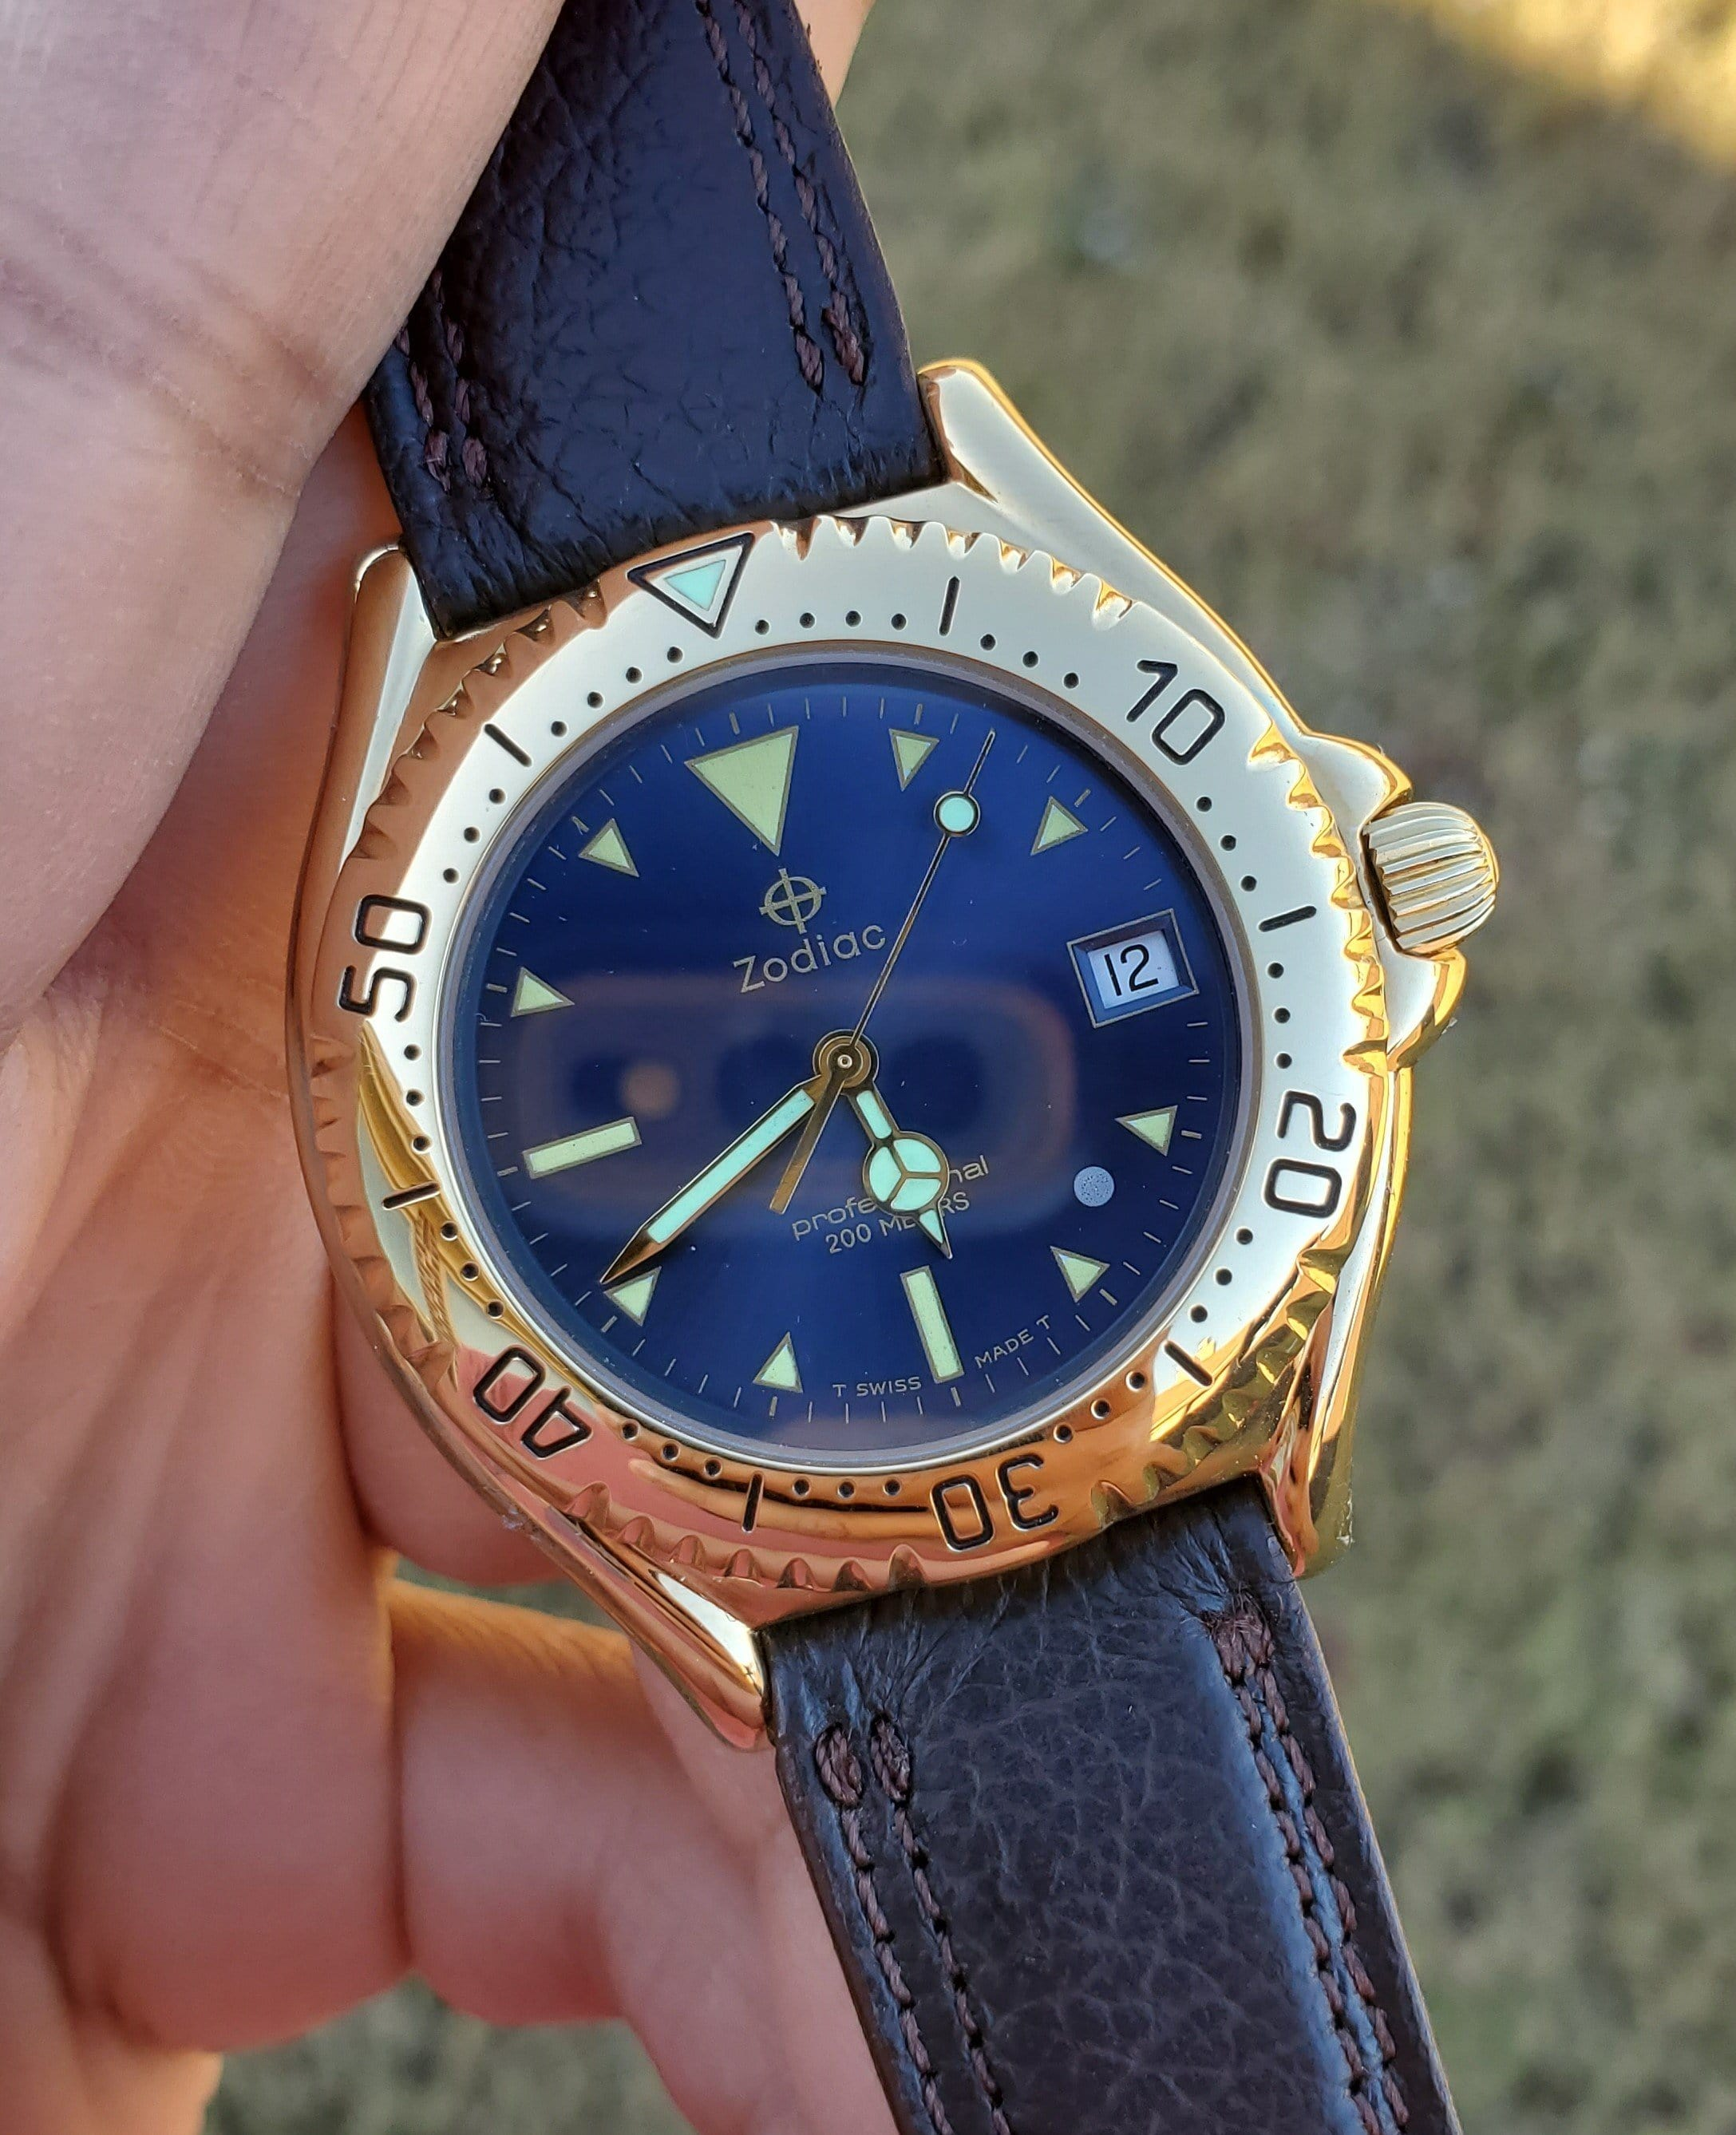 Zodiac Vintage Gold-Plated Blue Sunray Dial 1990s Men's Watch